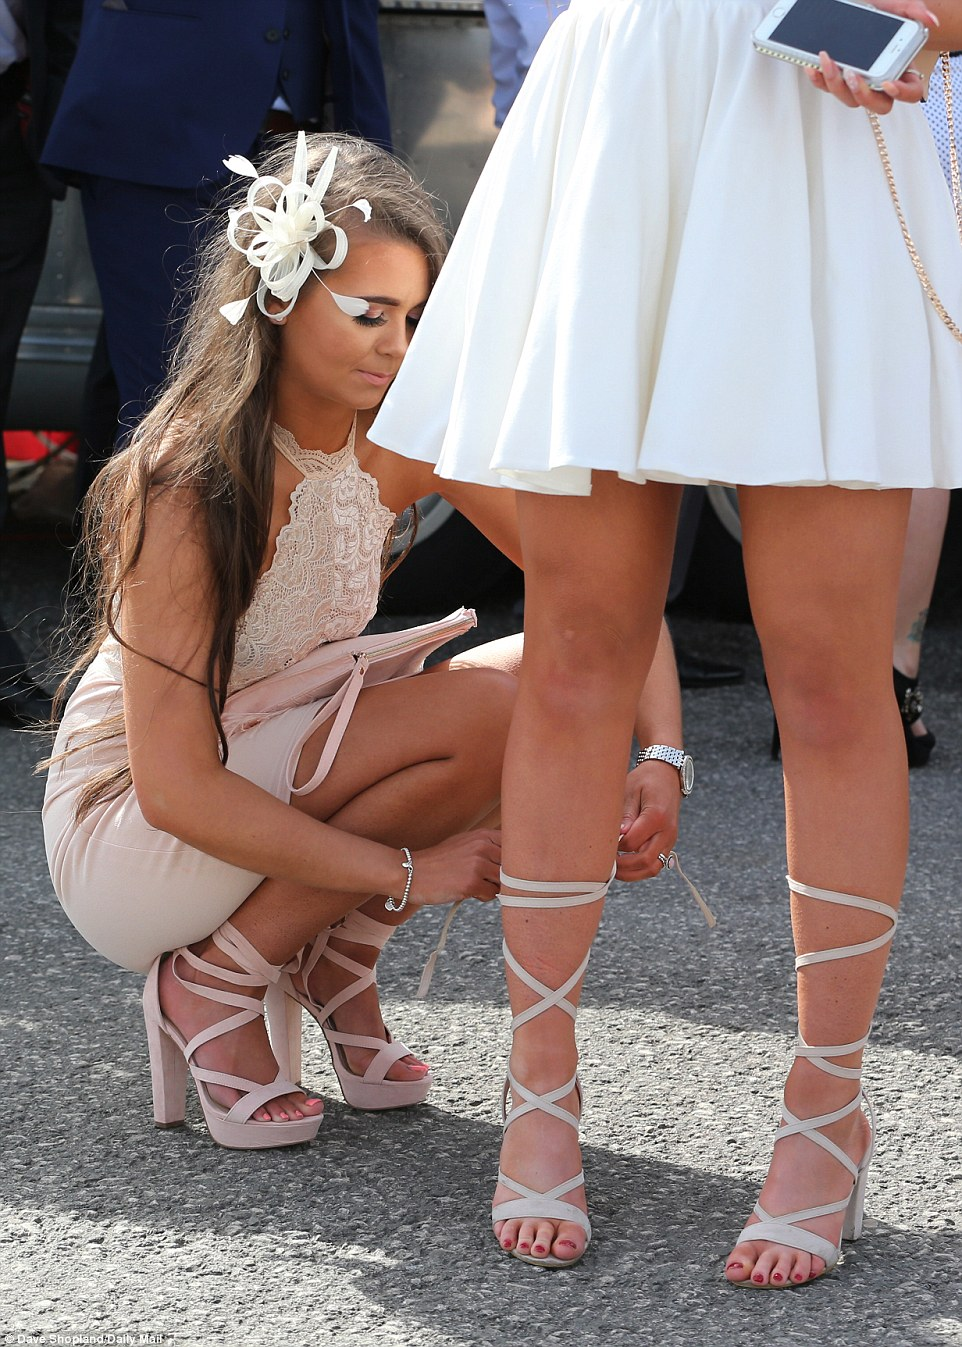 A woman helps her friend do up her gladiator style standards